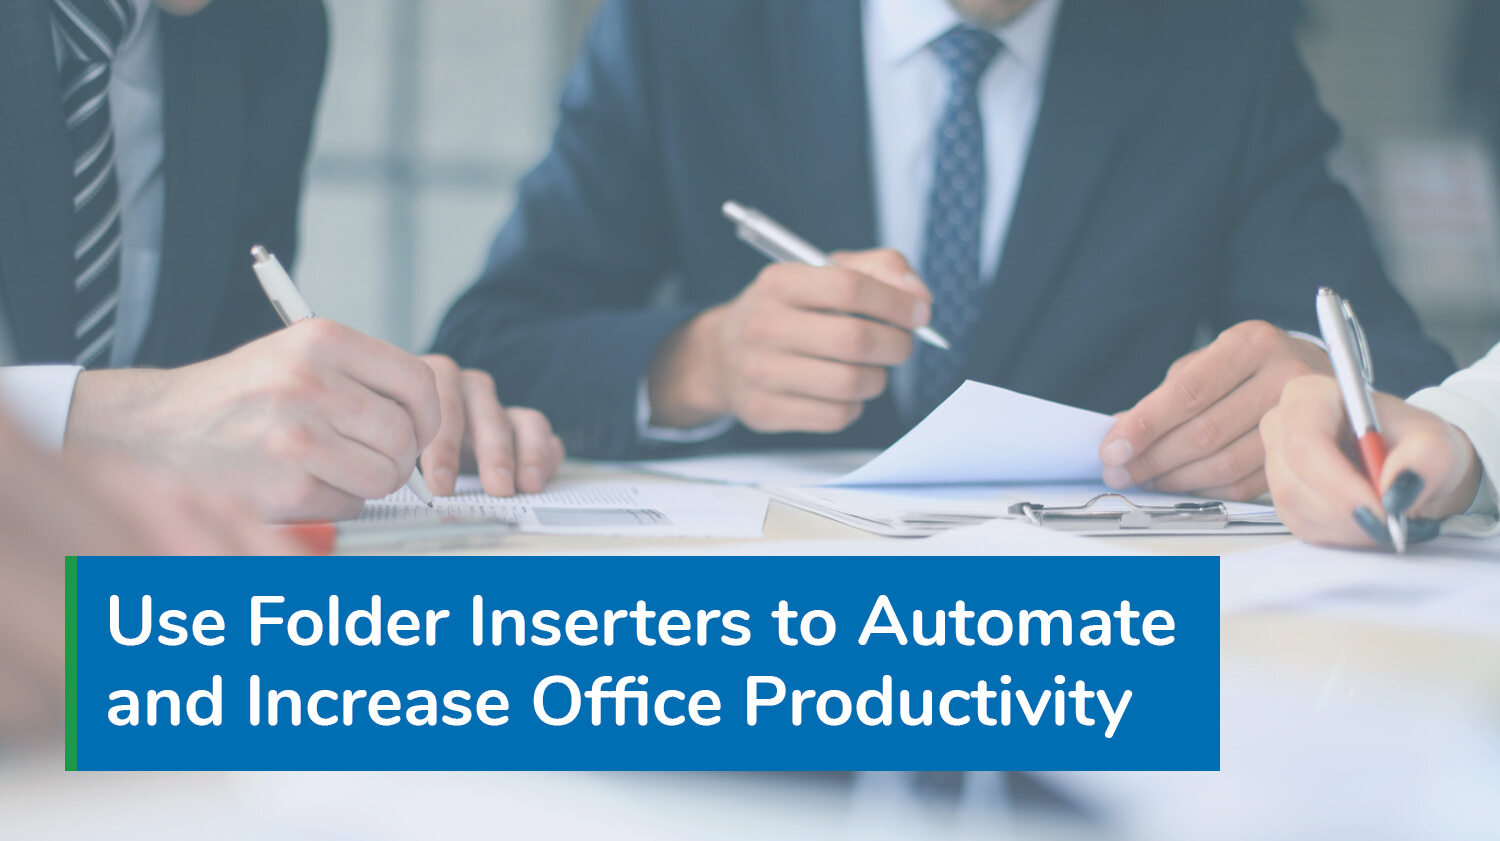 use folder inserters to automate and increase office productivity